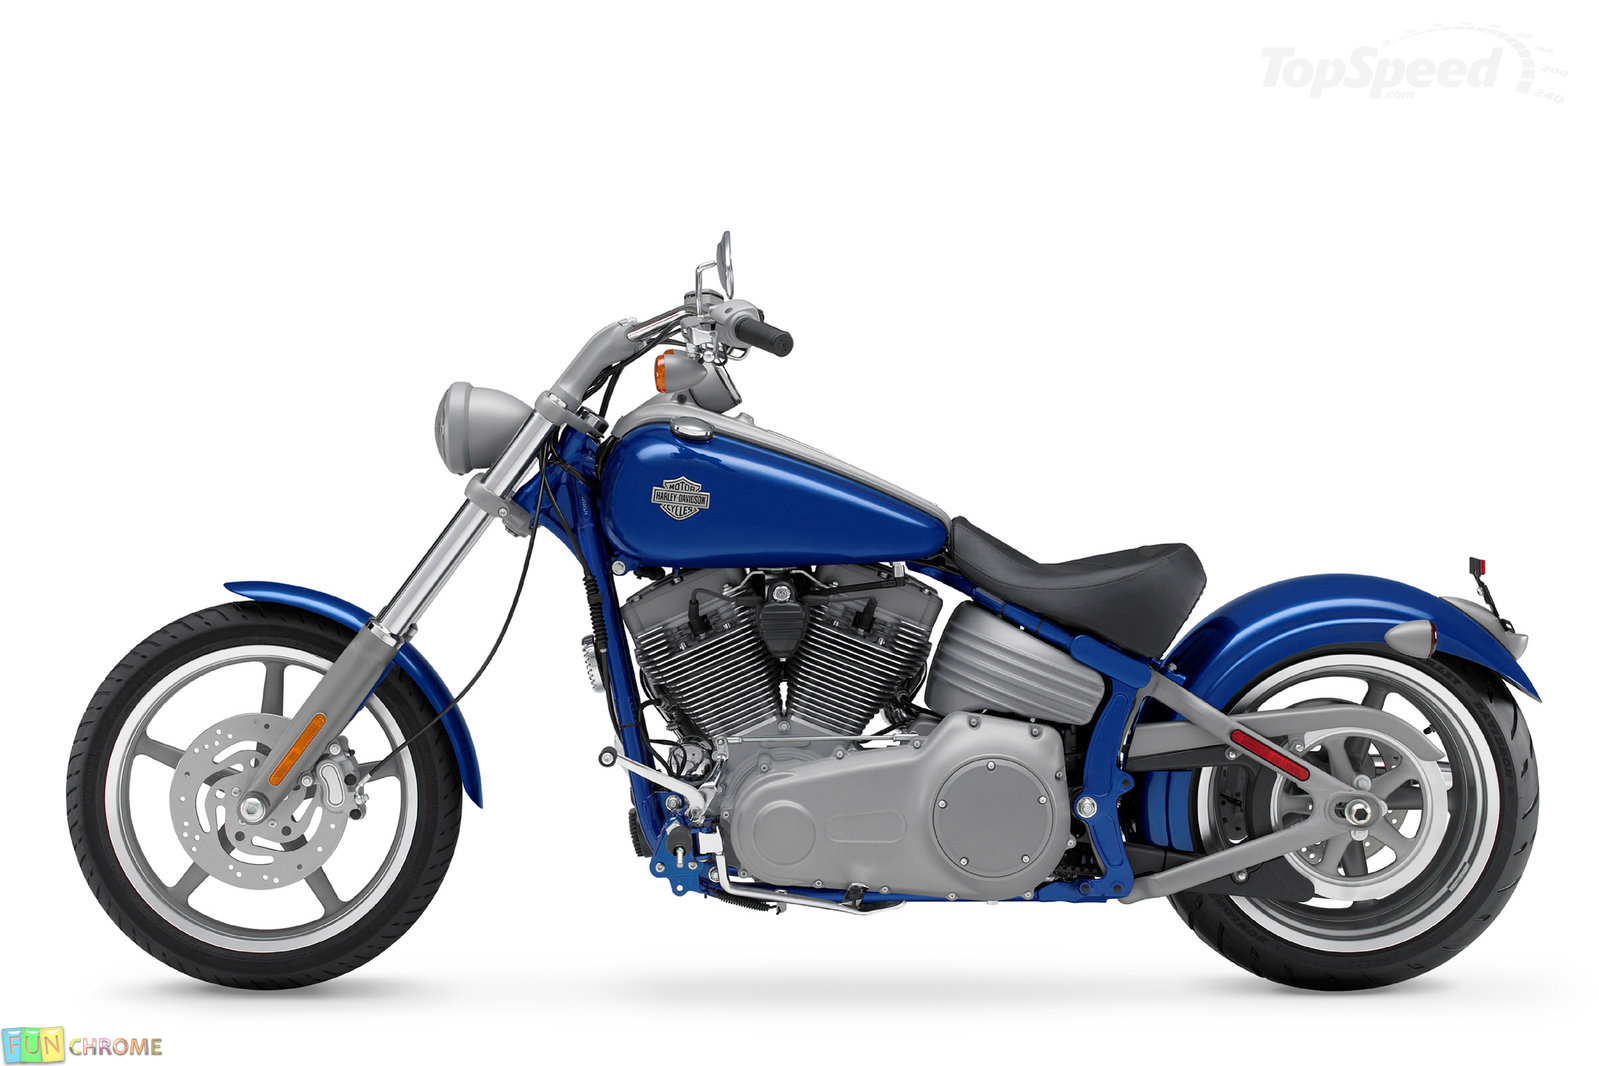 Harley Davidson Bikes HD Wallpapers Free Download, Harley ...